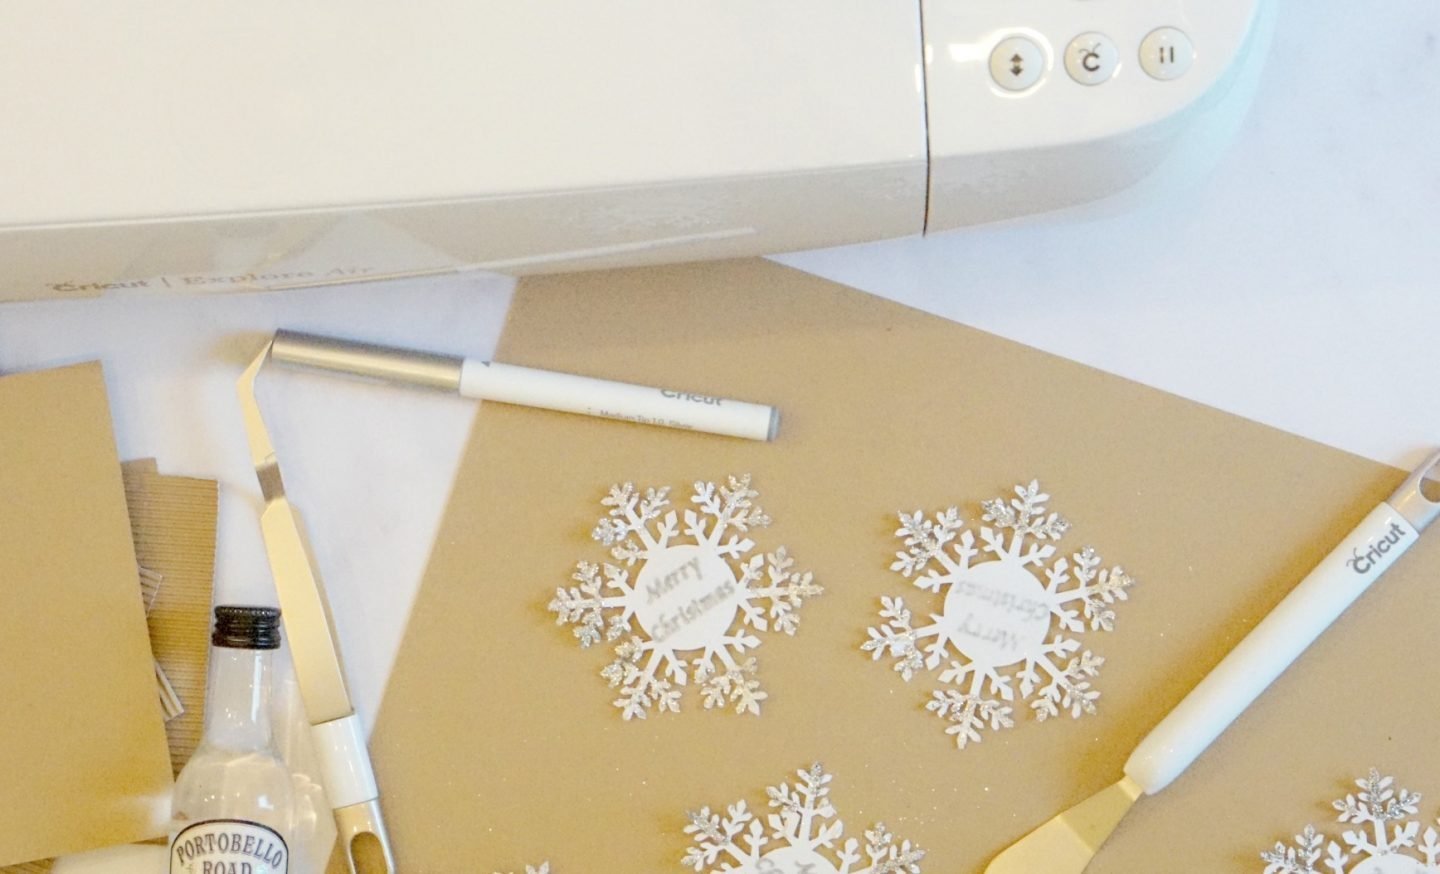 Crafts with the Cricut Maker